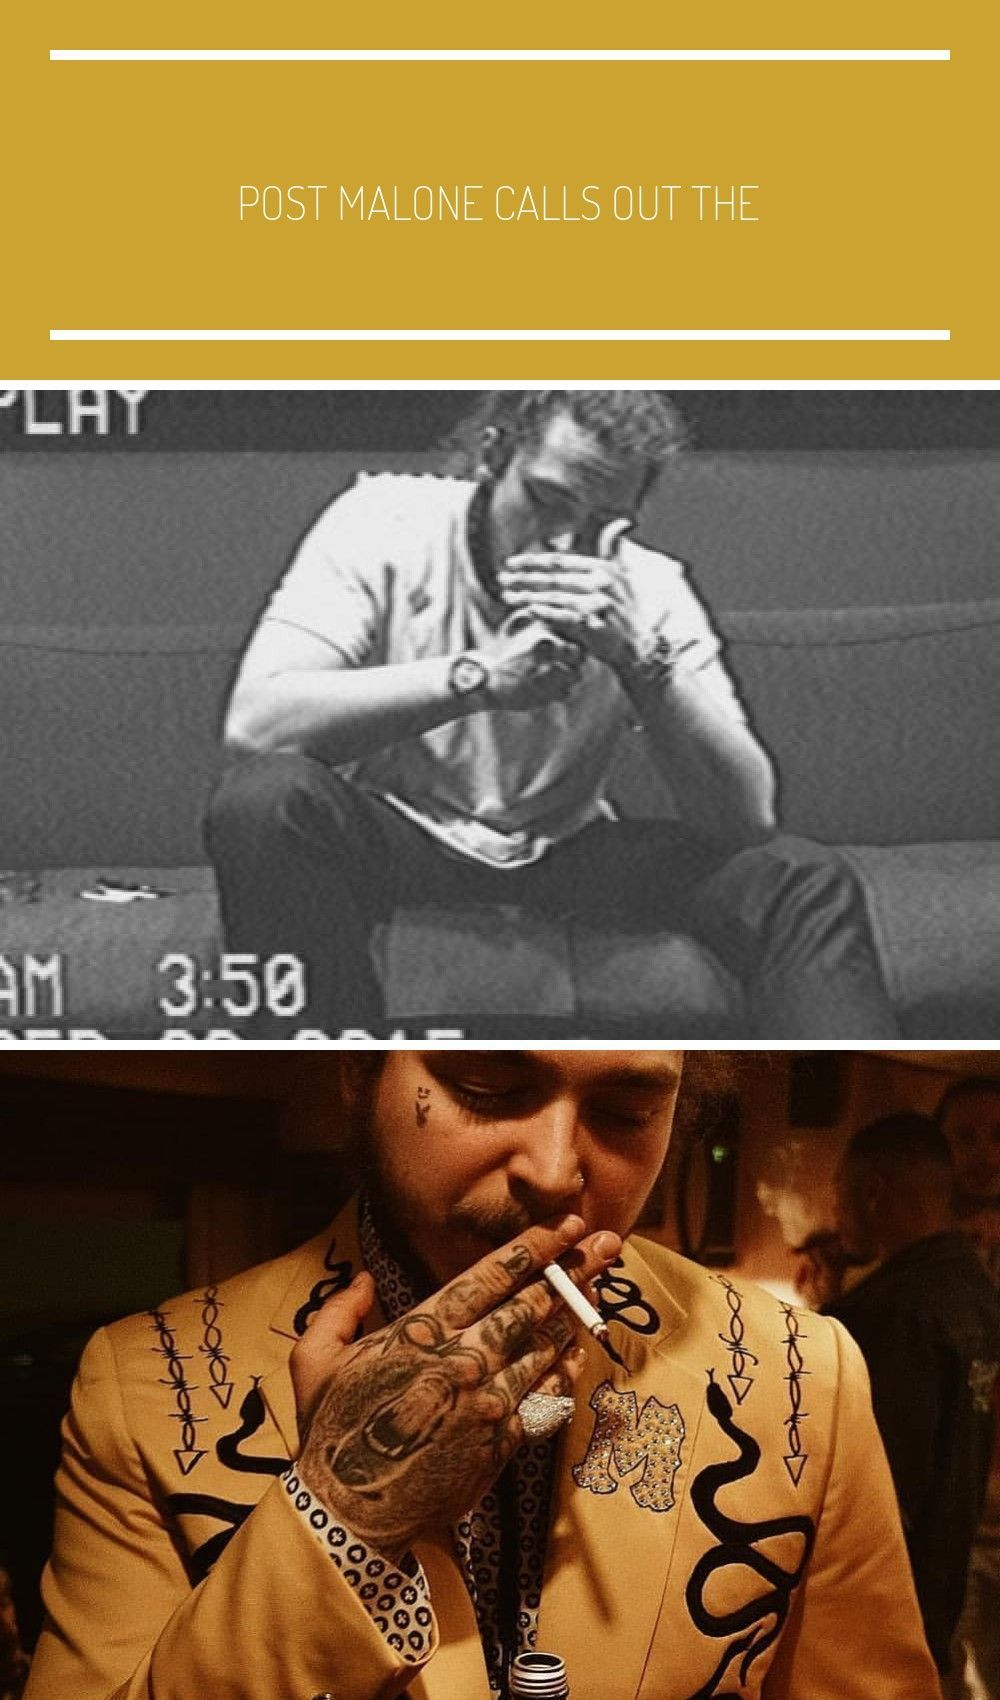 """Post Malone Calls Out The Internet On """"#mood"""" #postmalonewallpaper Post Malone Calls Out The Internet On #mood #postmalonewallpaper Post Malone Calls Out The Internet On """"#mood"""" #postmalonewallpaper Post Malone Calls Out The Internet On #mood # music quotes lyrics rap post malone #postmalonewallpaper Post Malone Calls Out The Internet On """"#mood"""" #postmalonewallpaper Post Malone Calls Out The Internet On #mood #postmalonewallpaper Post Malone Calls Out The Internet On """"#mood"""" #pos #postmalonewallpaper"""